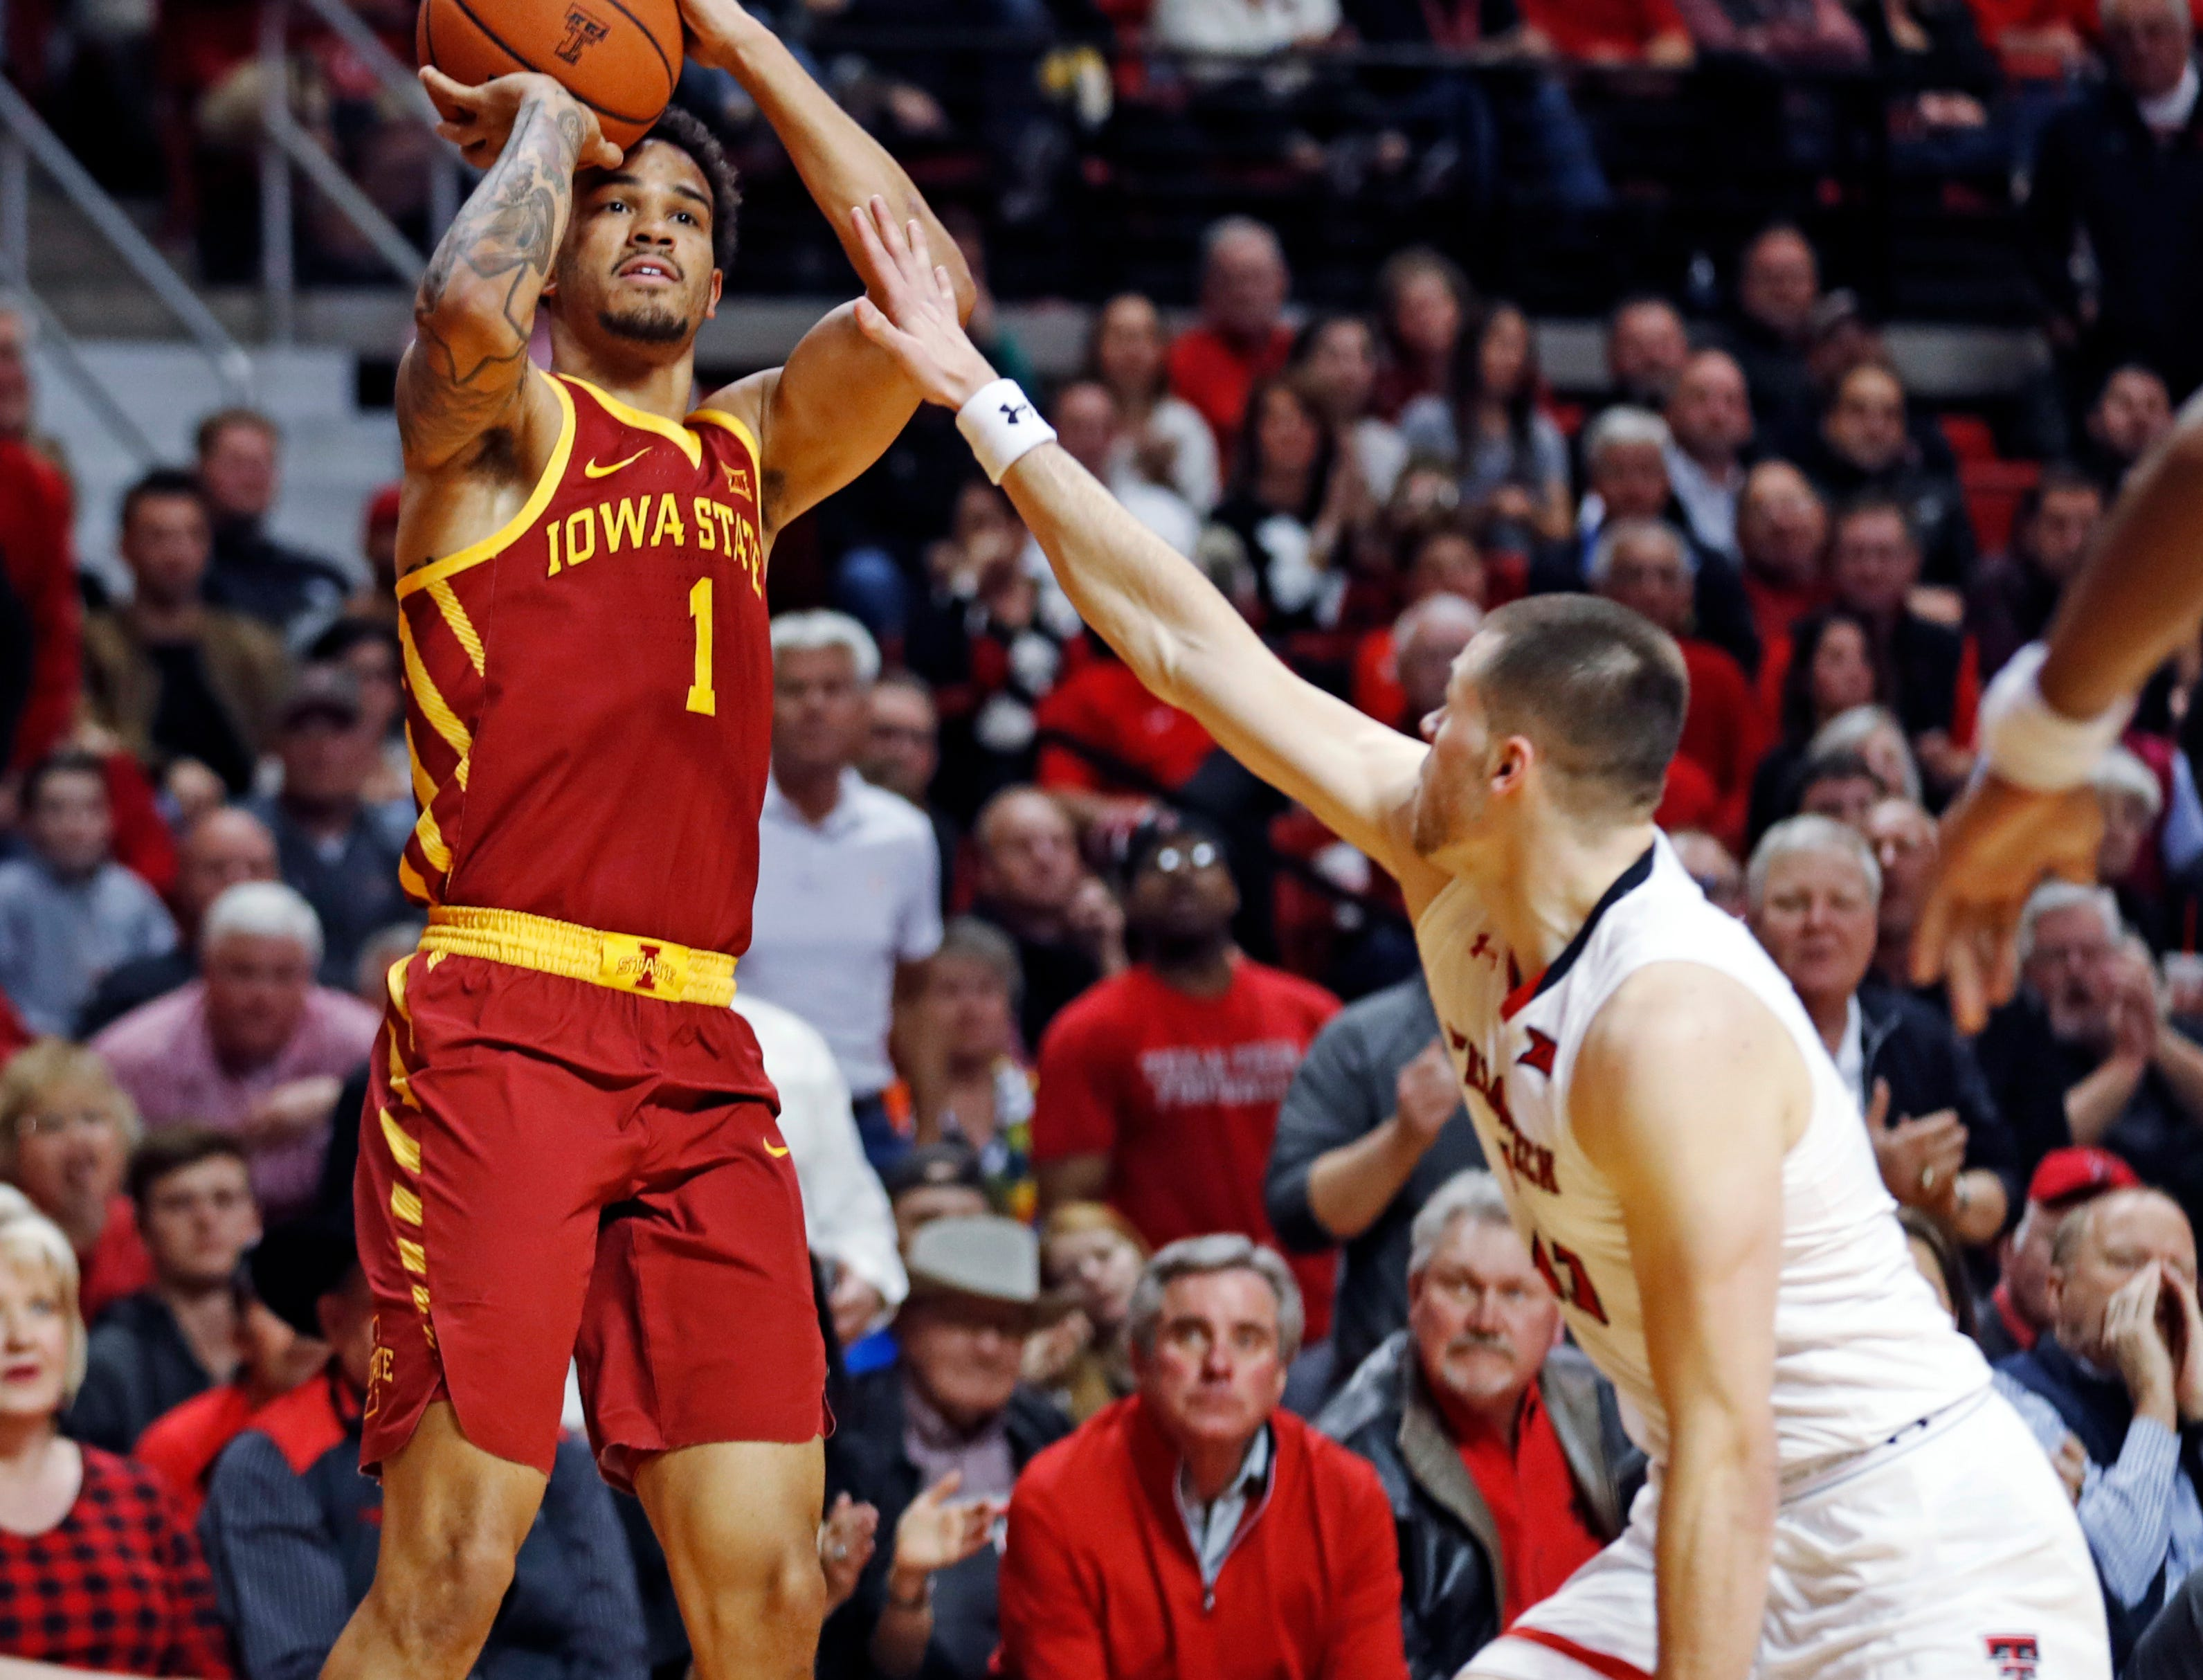 Iowa State's Nick Weiler-Babb (1) shoots over Texas Tech's Matt Mooney (13) during the second half of an NCAA college basketball game Wednesday, Jan. 16, 2019, in Lubbock, Texas.